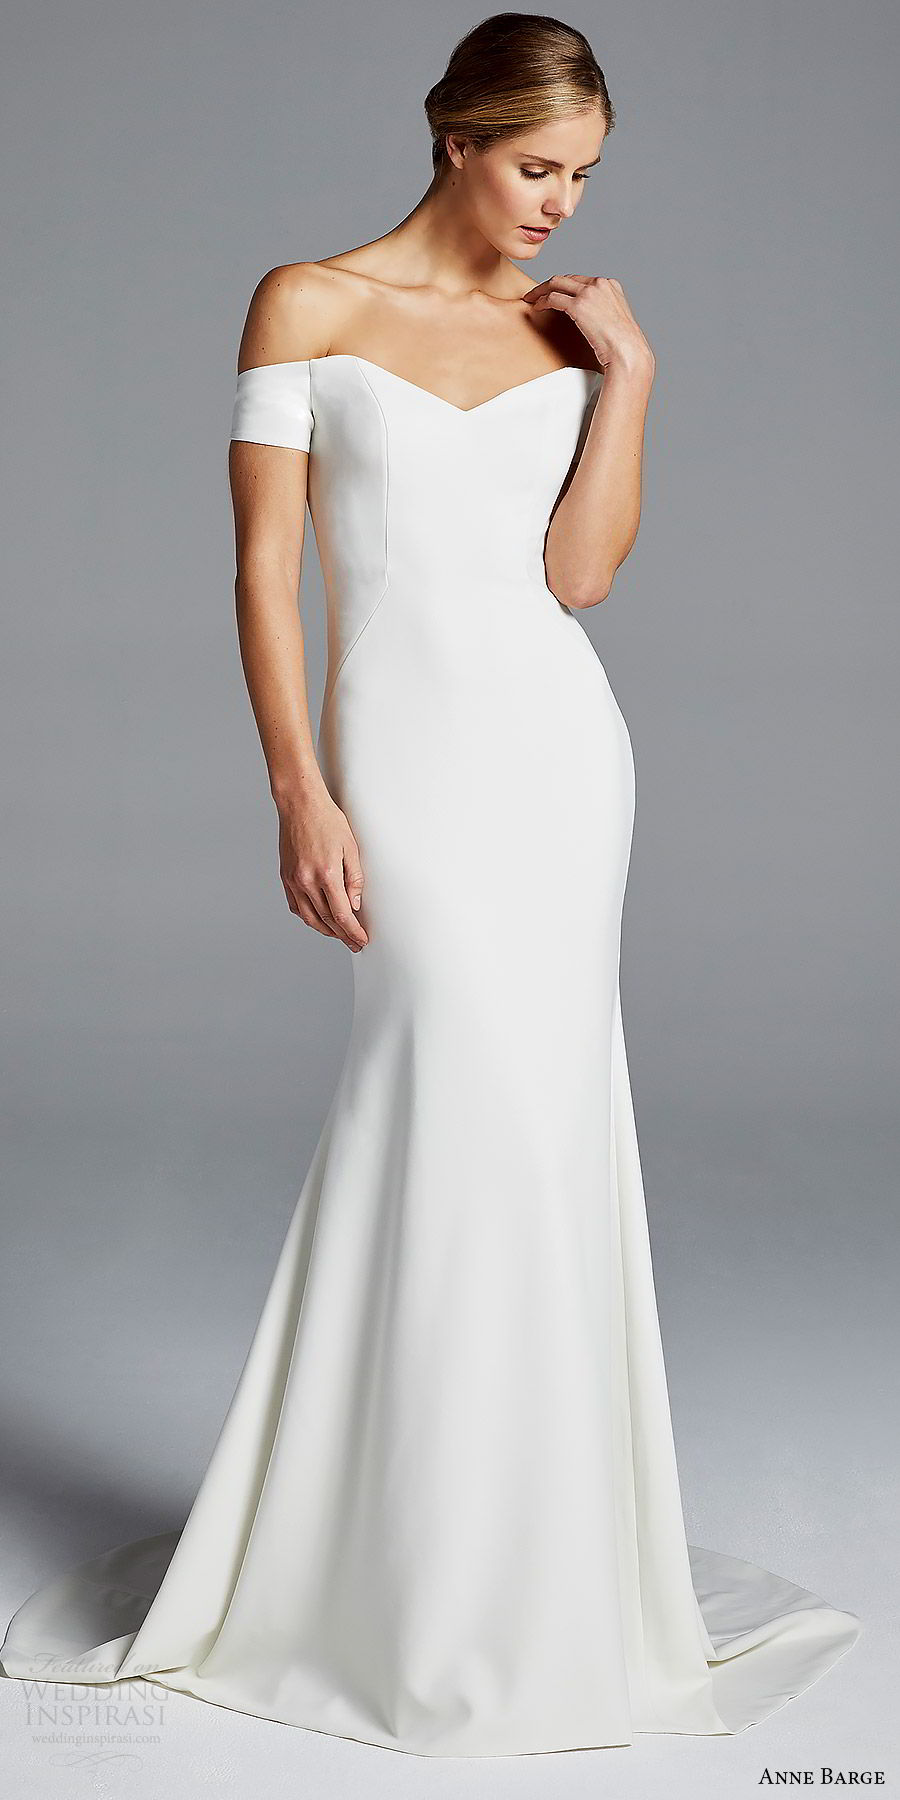 anne barge bridal spring 2019 off shoulder short sleeves sweetheart neckline minimally embellished sheath wedding dress (jolie) mv chic modern elegant